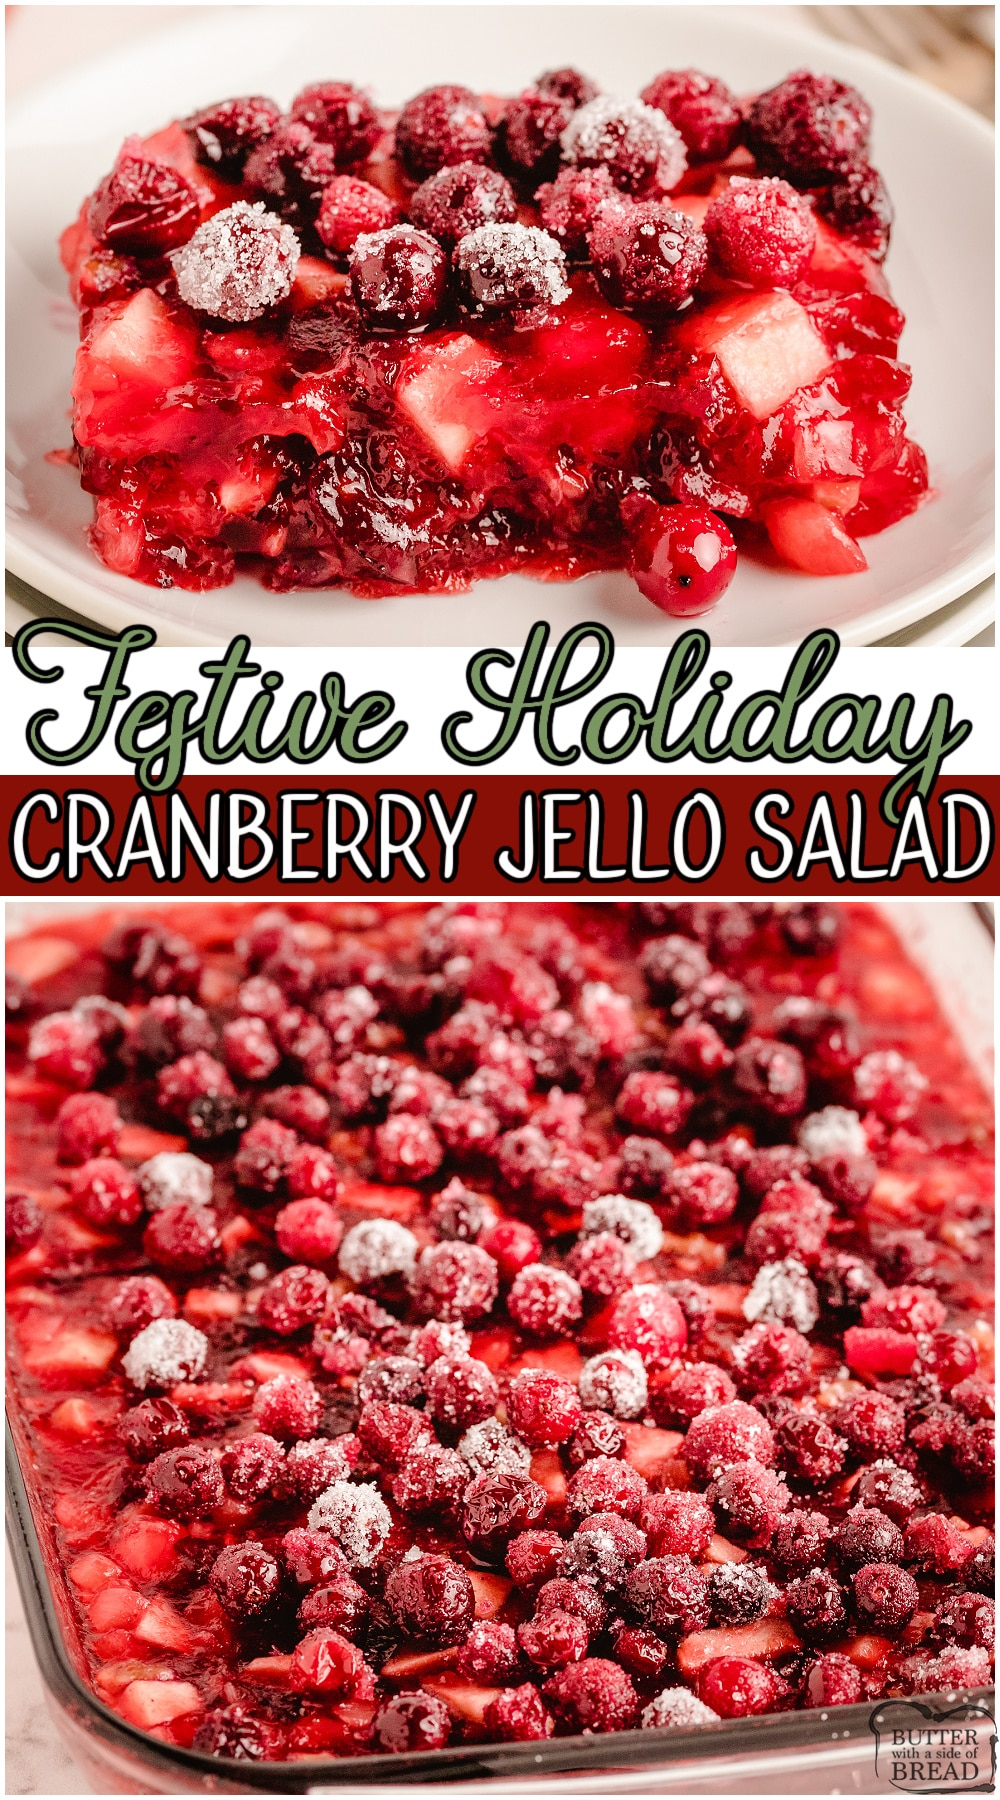 Festive Cranberry Jell-O combines cranberry sauce, jello, pineapple & fresh fruit for a fruity, flavorful holiday side dish that everyone loves!